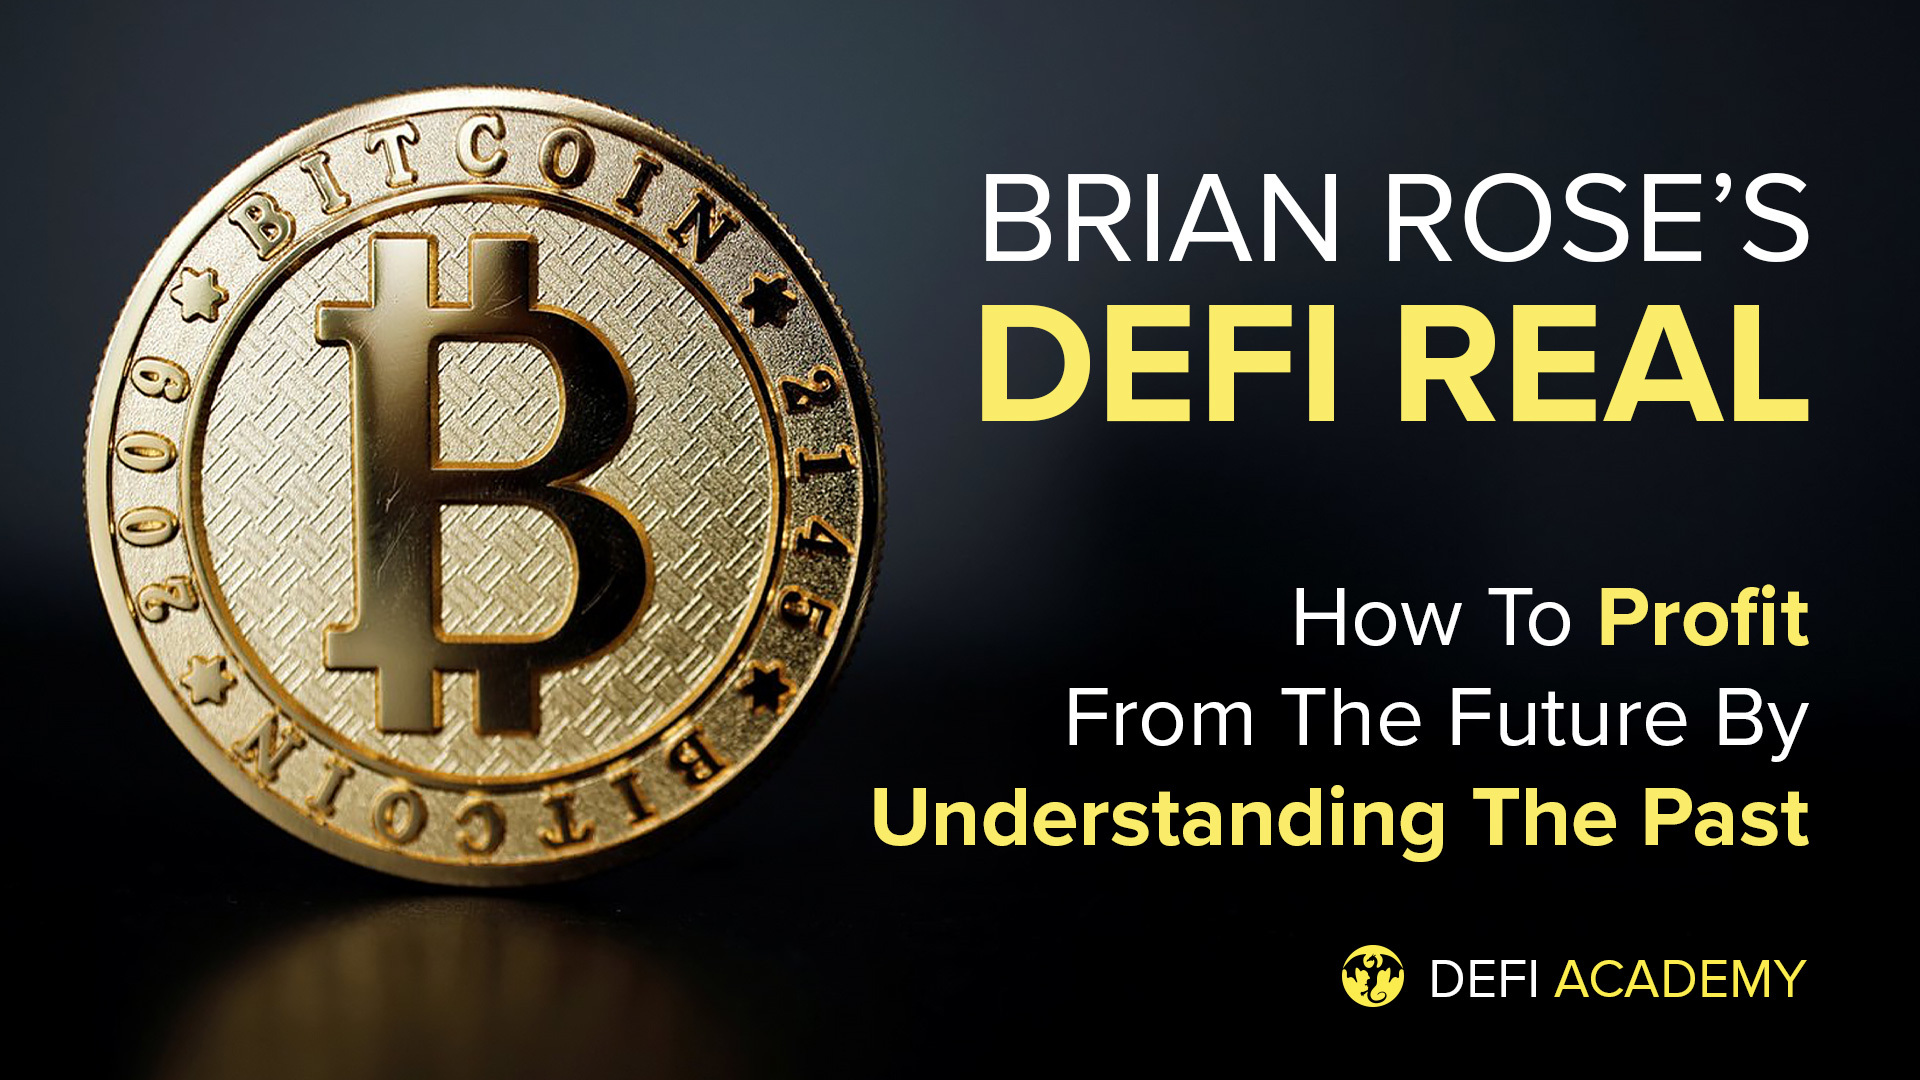 Brian Rose's DeFi Real - How To Profit From The Future By Understanding The Past